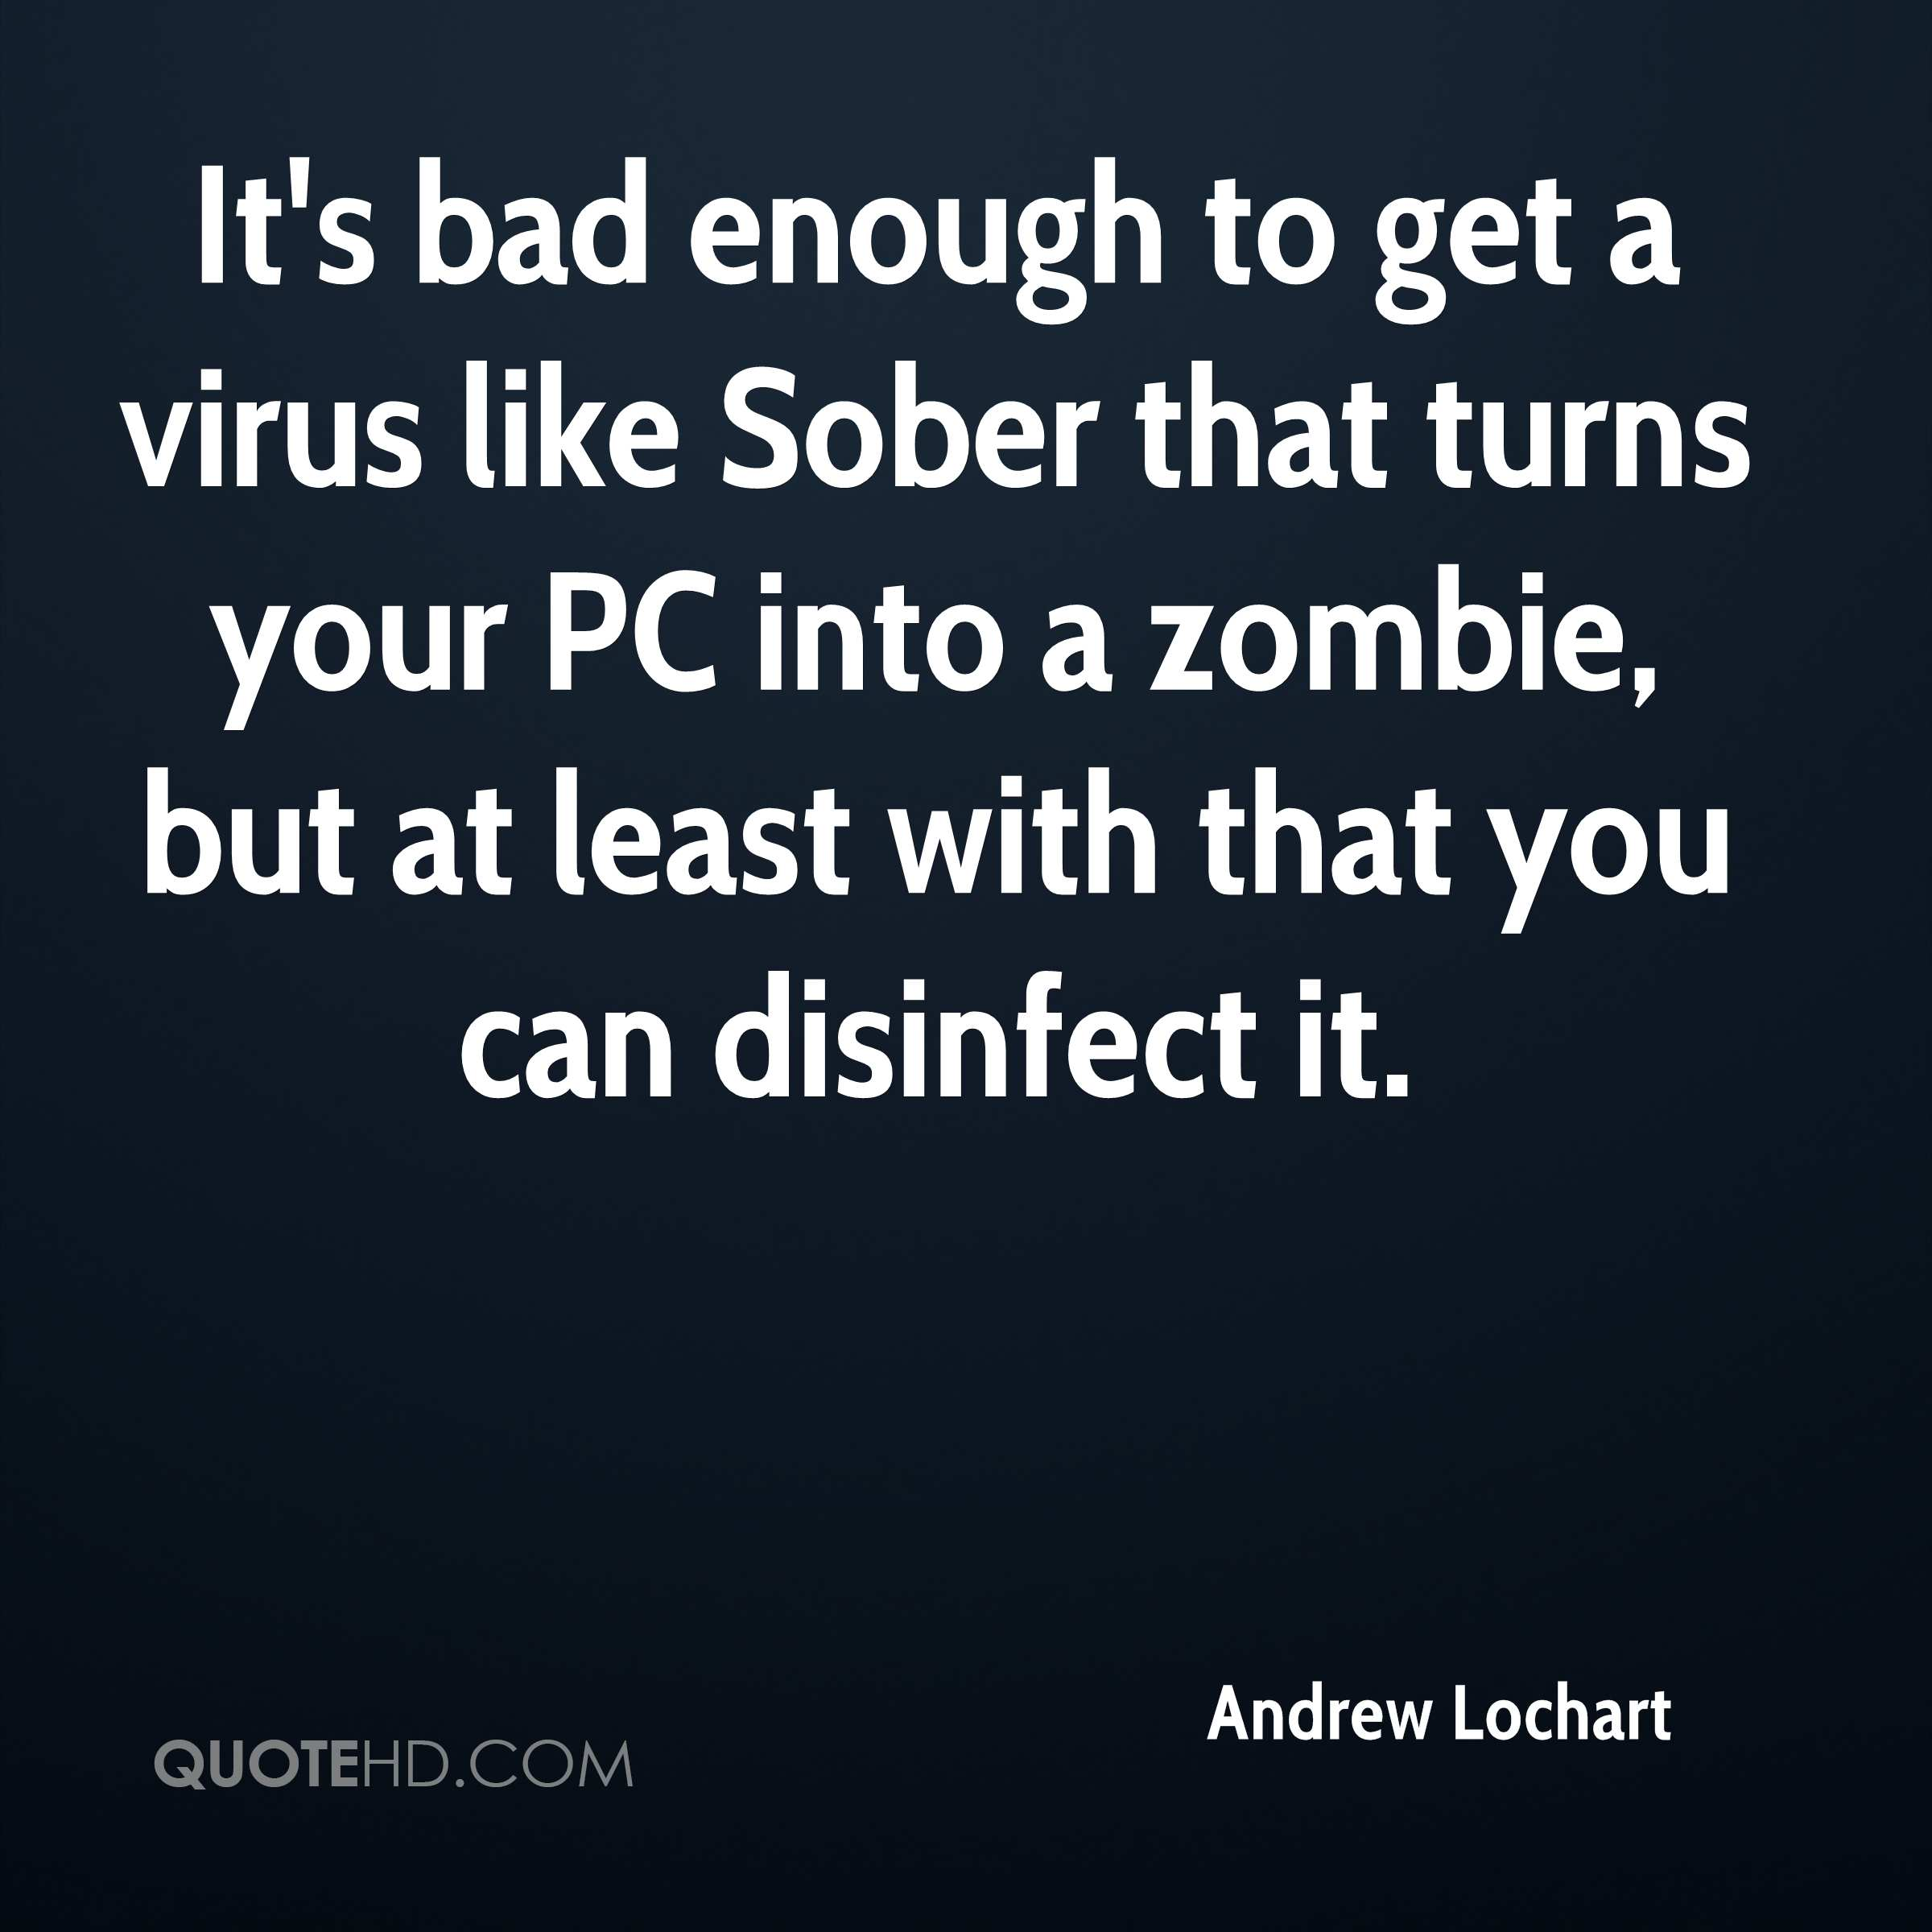 It's bad enough to get a virus like Sober that turns your PC into a zombie, but at least with that you can disinfect it.